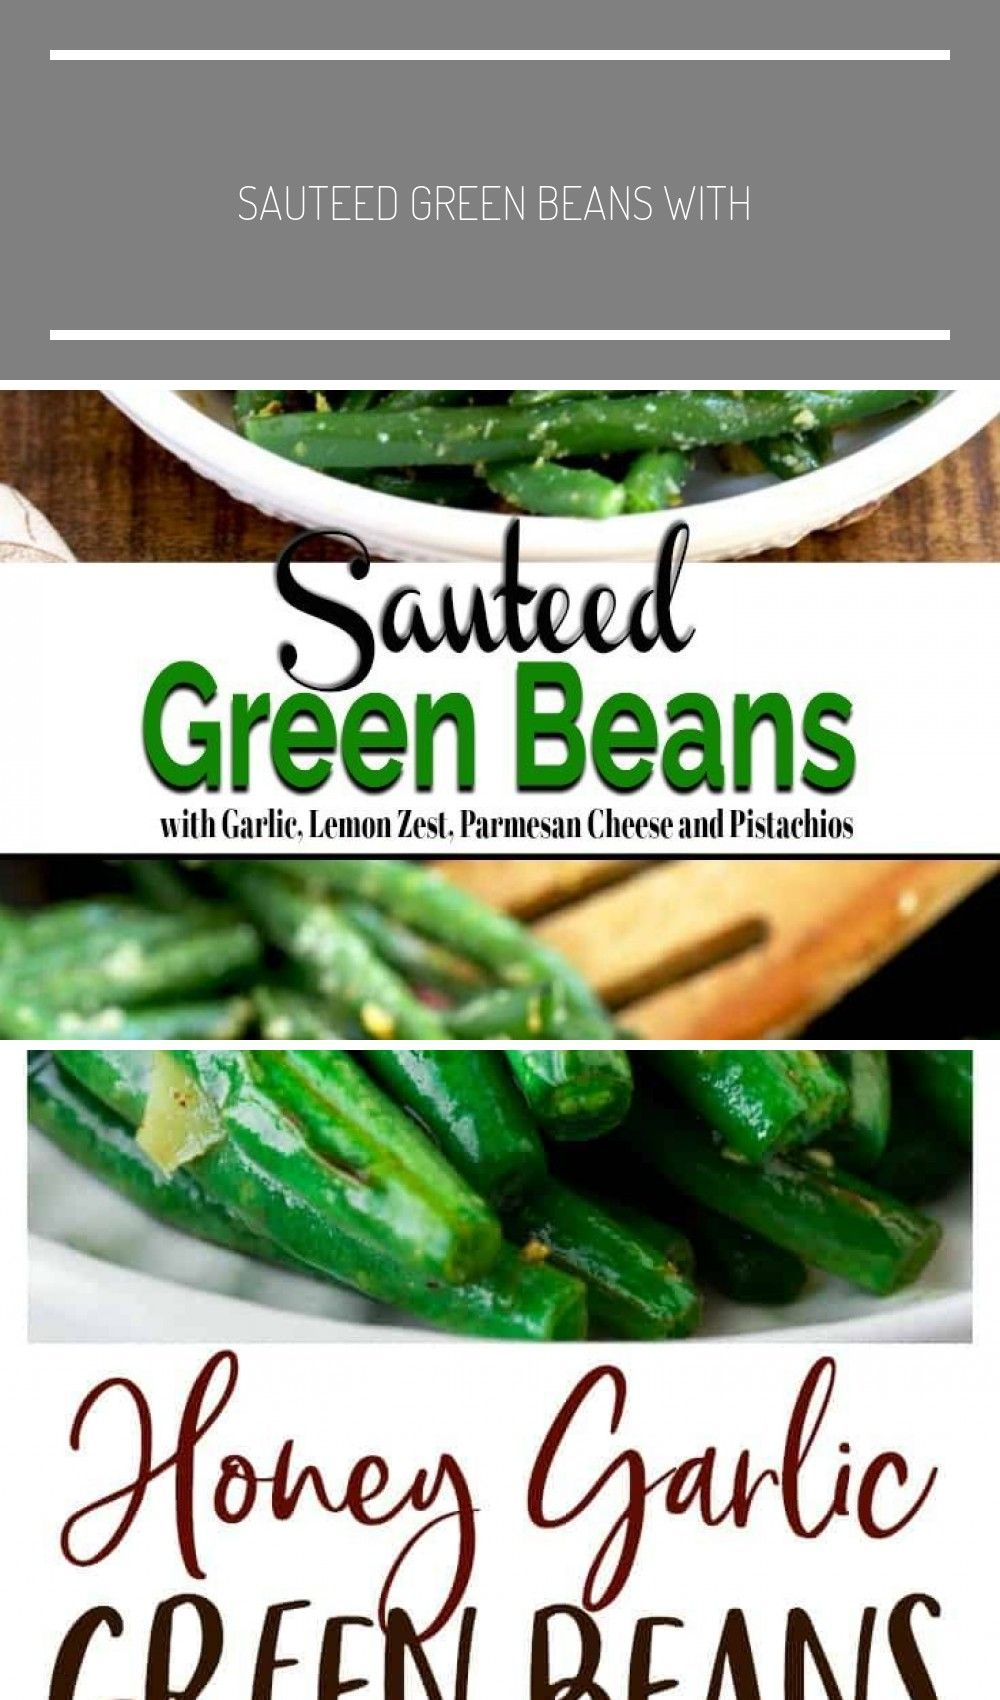 Sauteed Green Beans with garlic, lemon zest, pistachios and Parmesan is a fast, delicious and healt